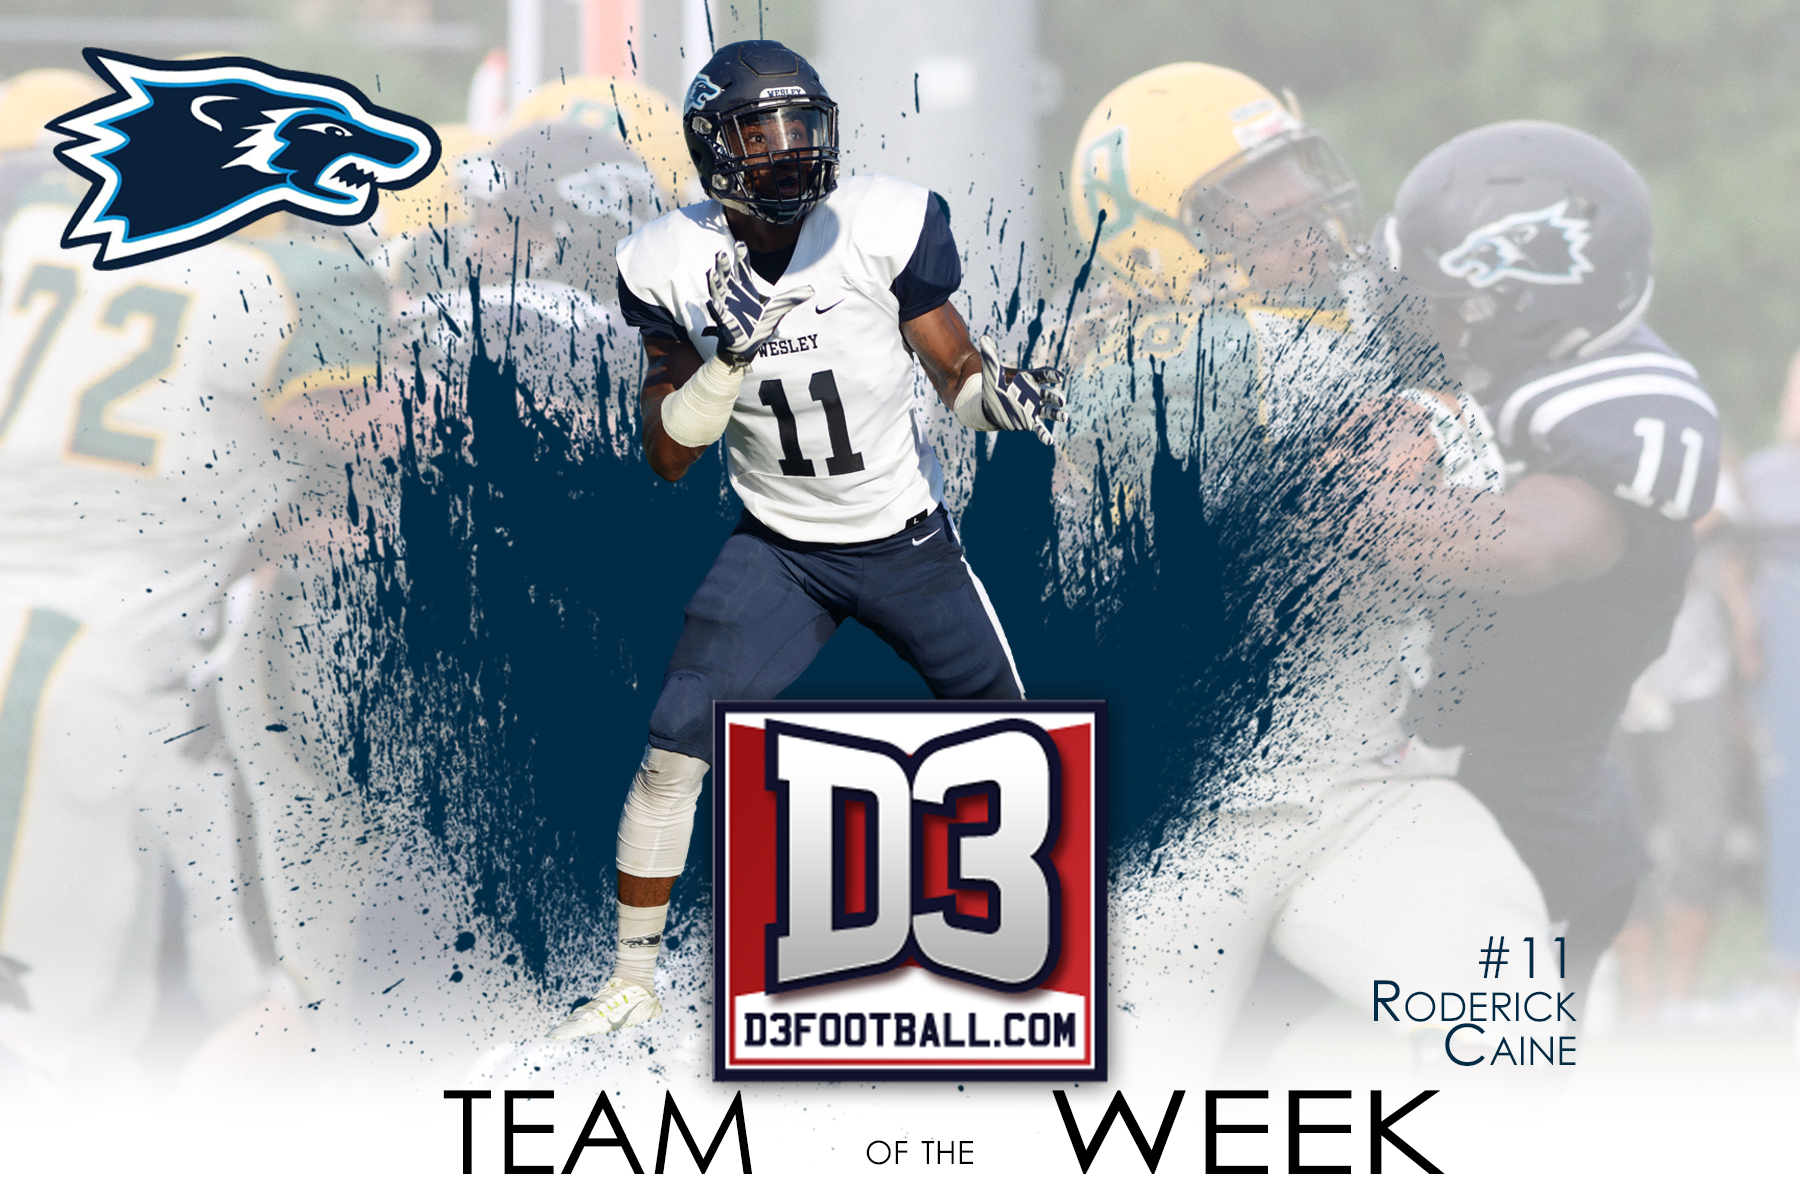 Caine Named to D3football.com Team of the Week